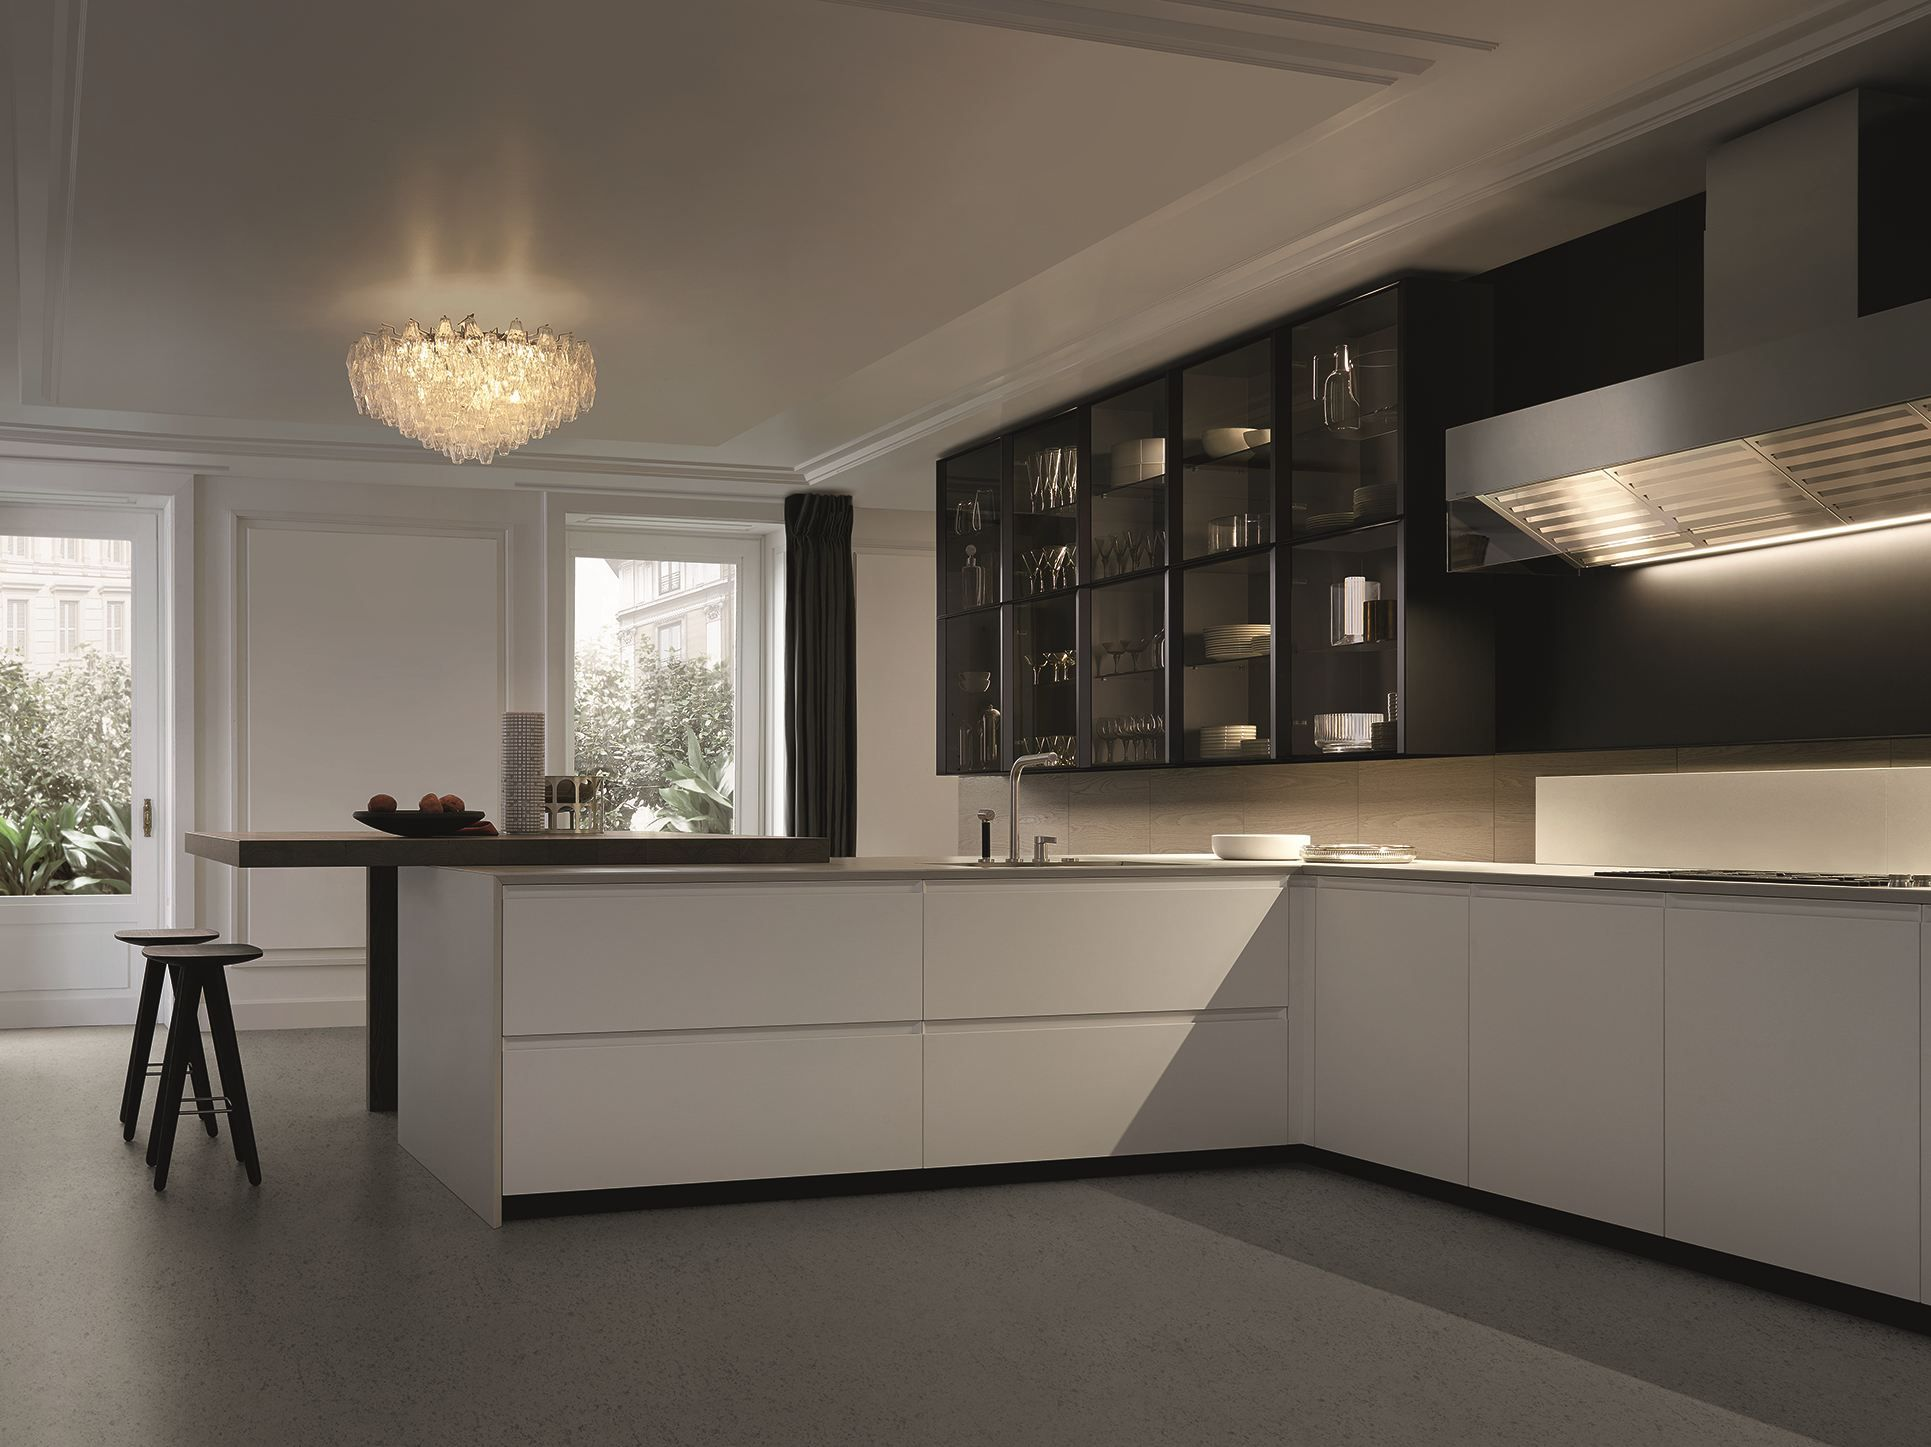 Lacquered Kitchen With Integrated Handles With Peninsula TRAIL By Varenna  By Poliform Design Carlo Colombo,